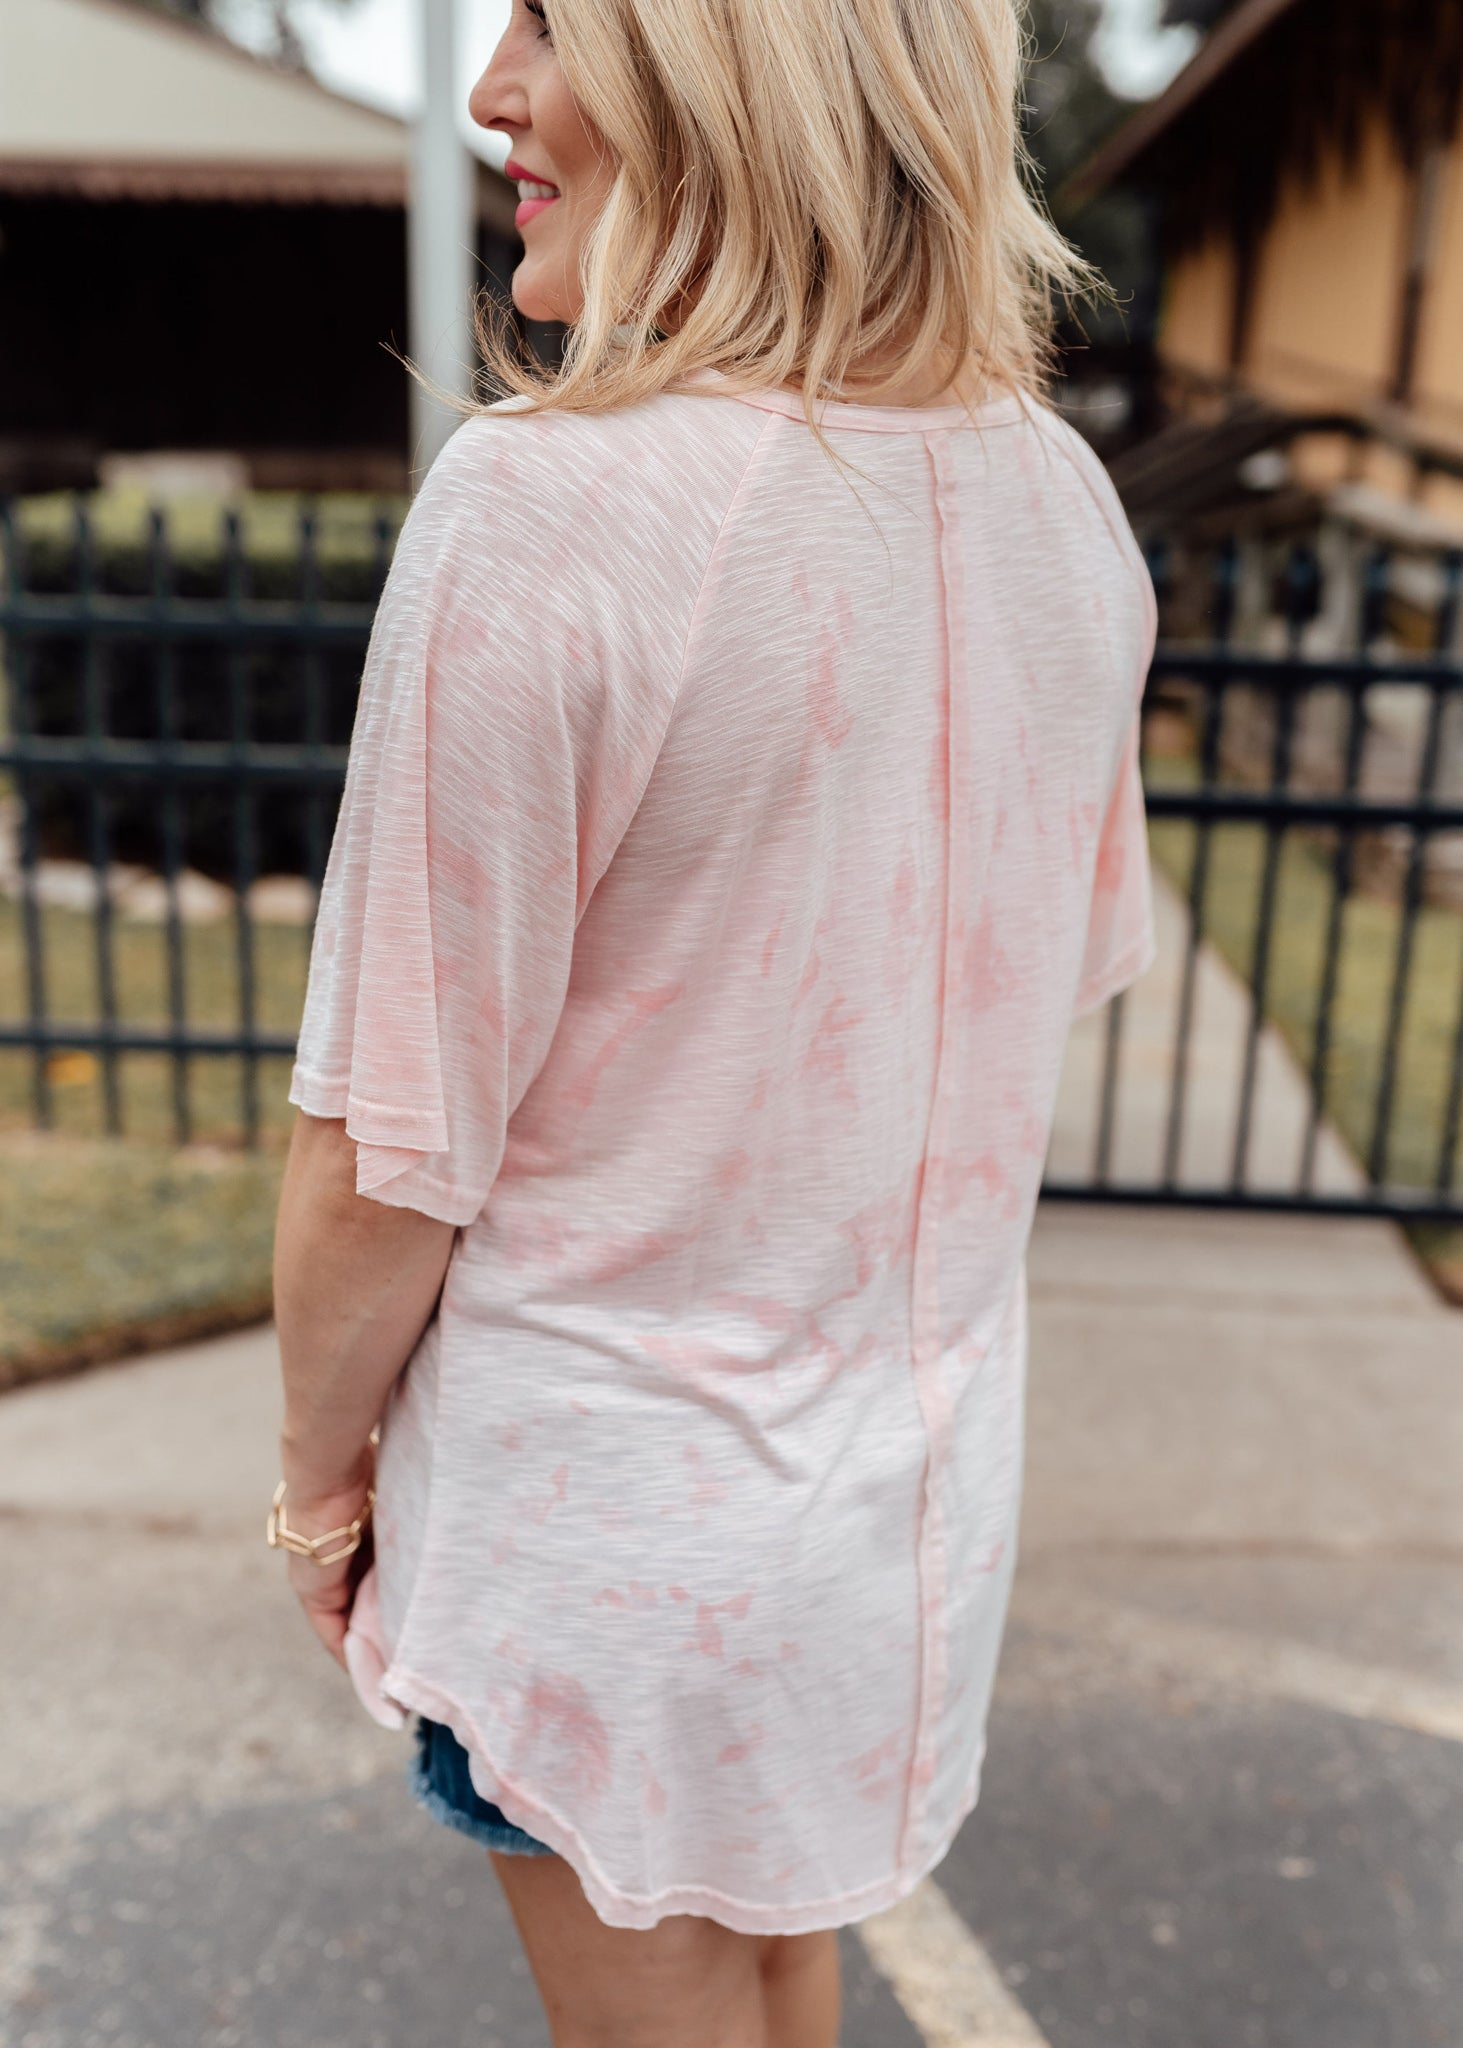 Peach Sherbet Tunic Top (CAN FIT XL)